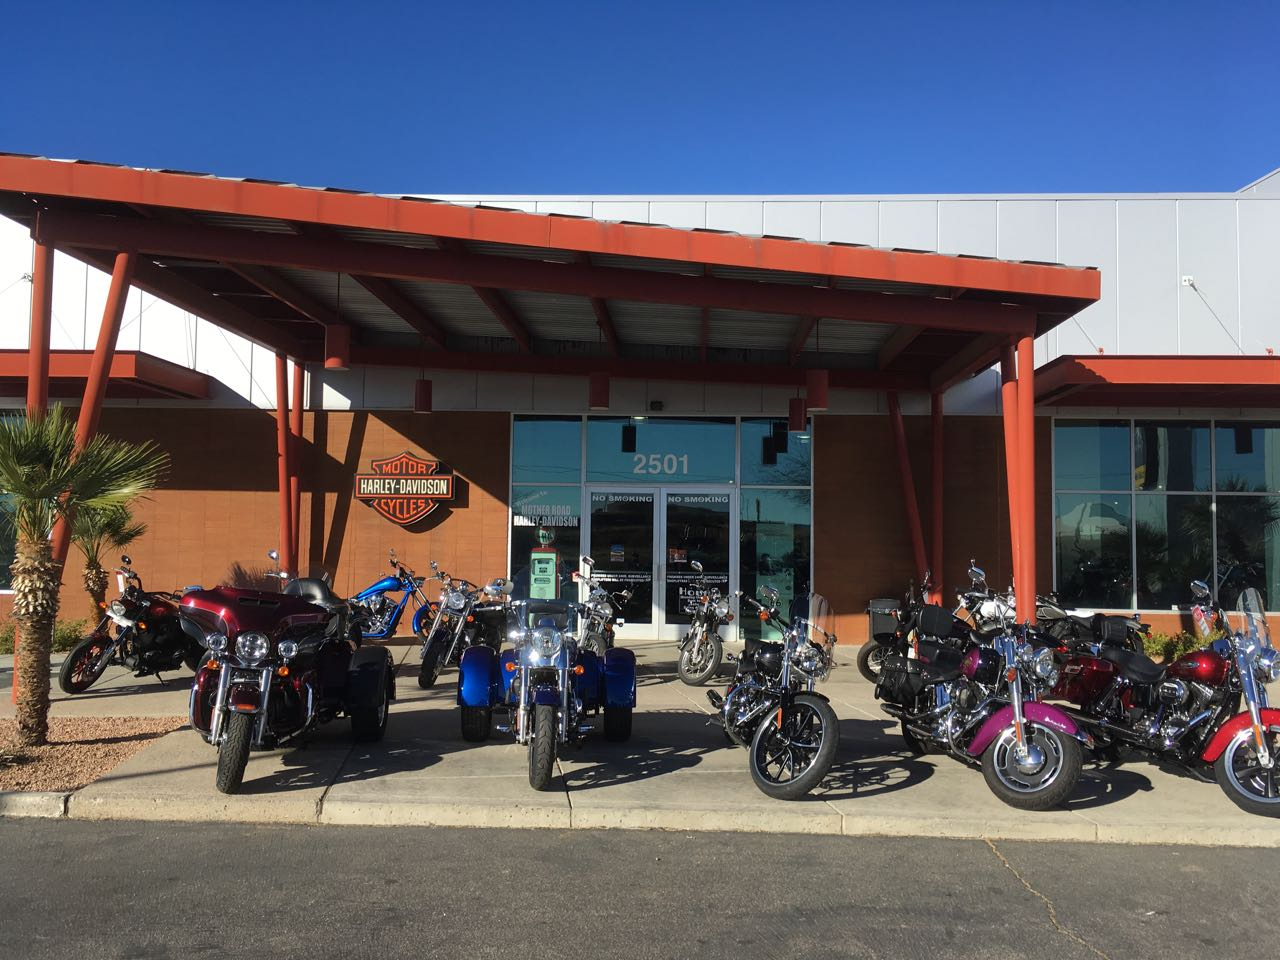 Mother Road Harley Davidson in Kingman